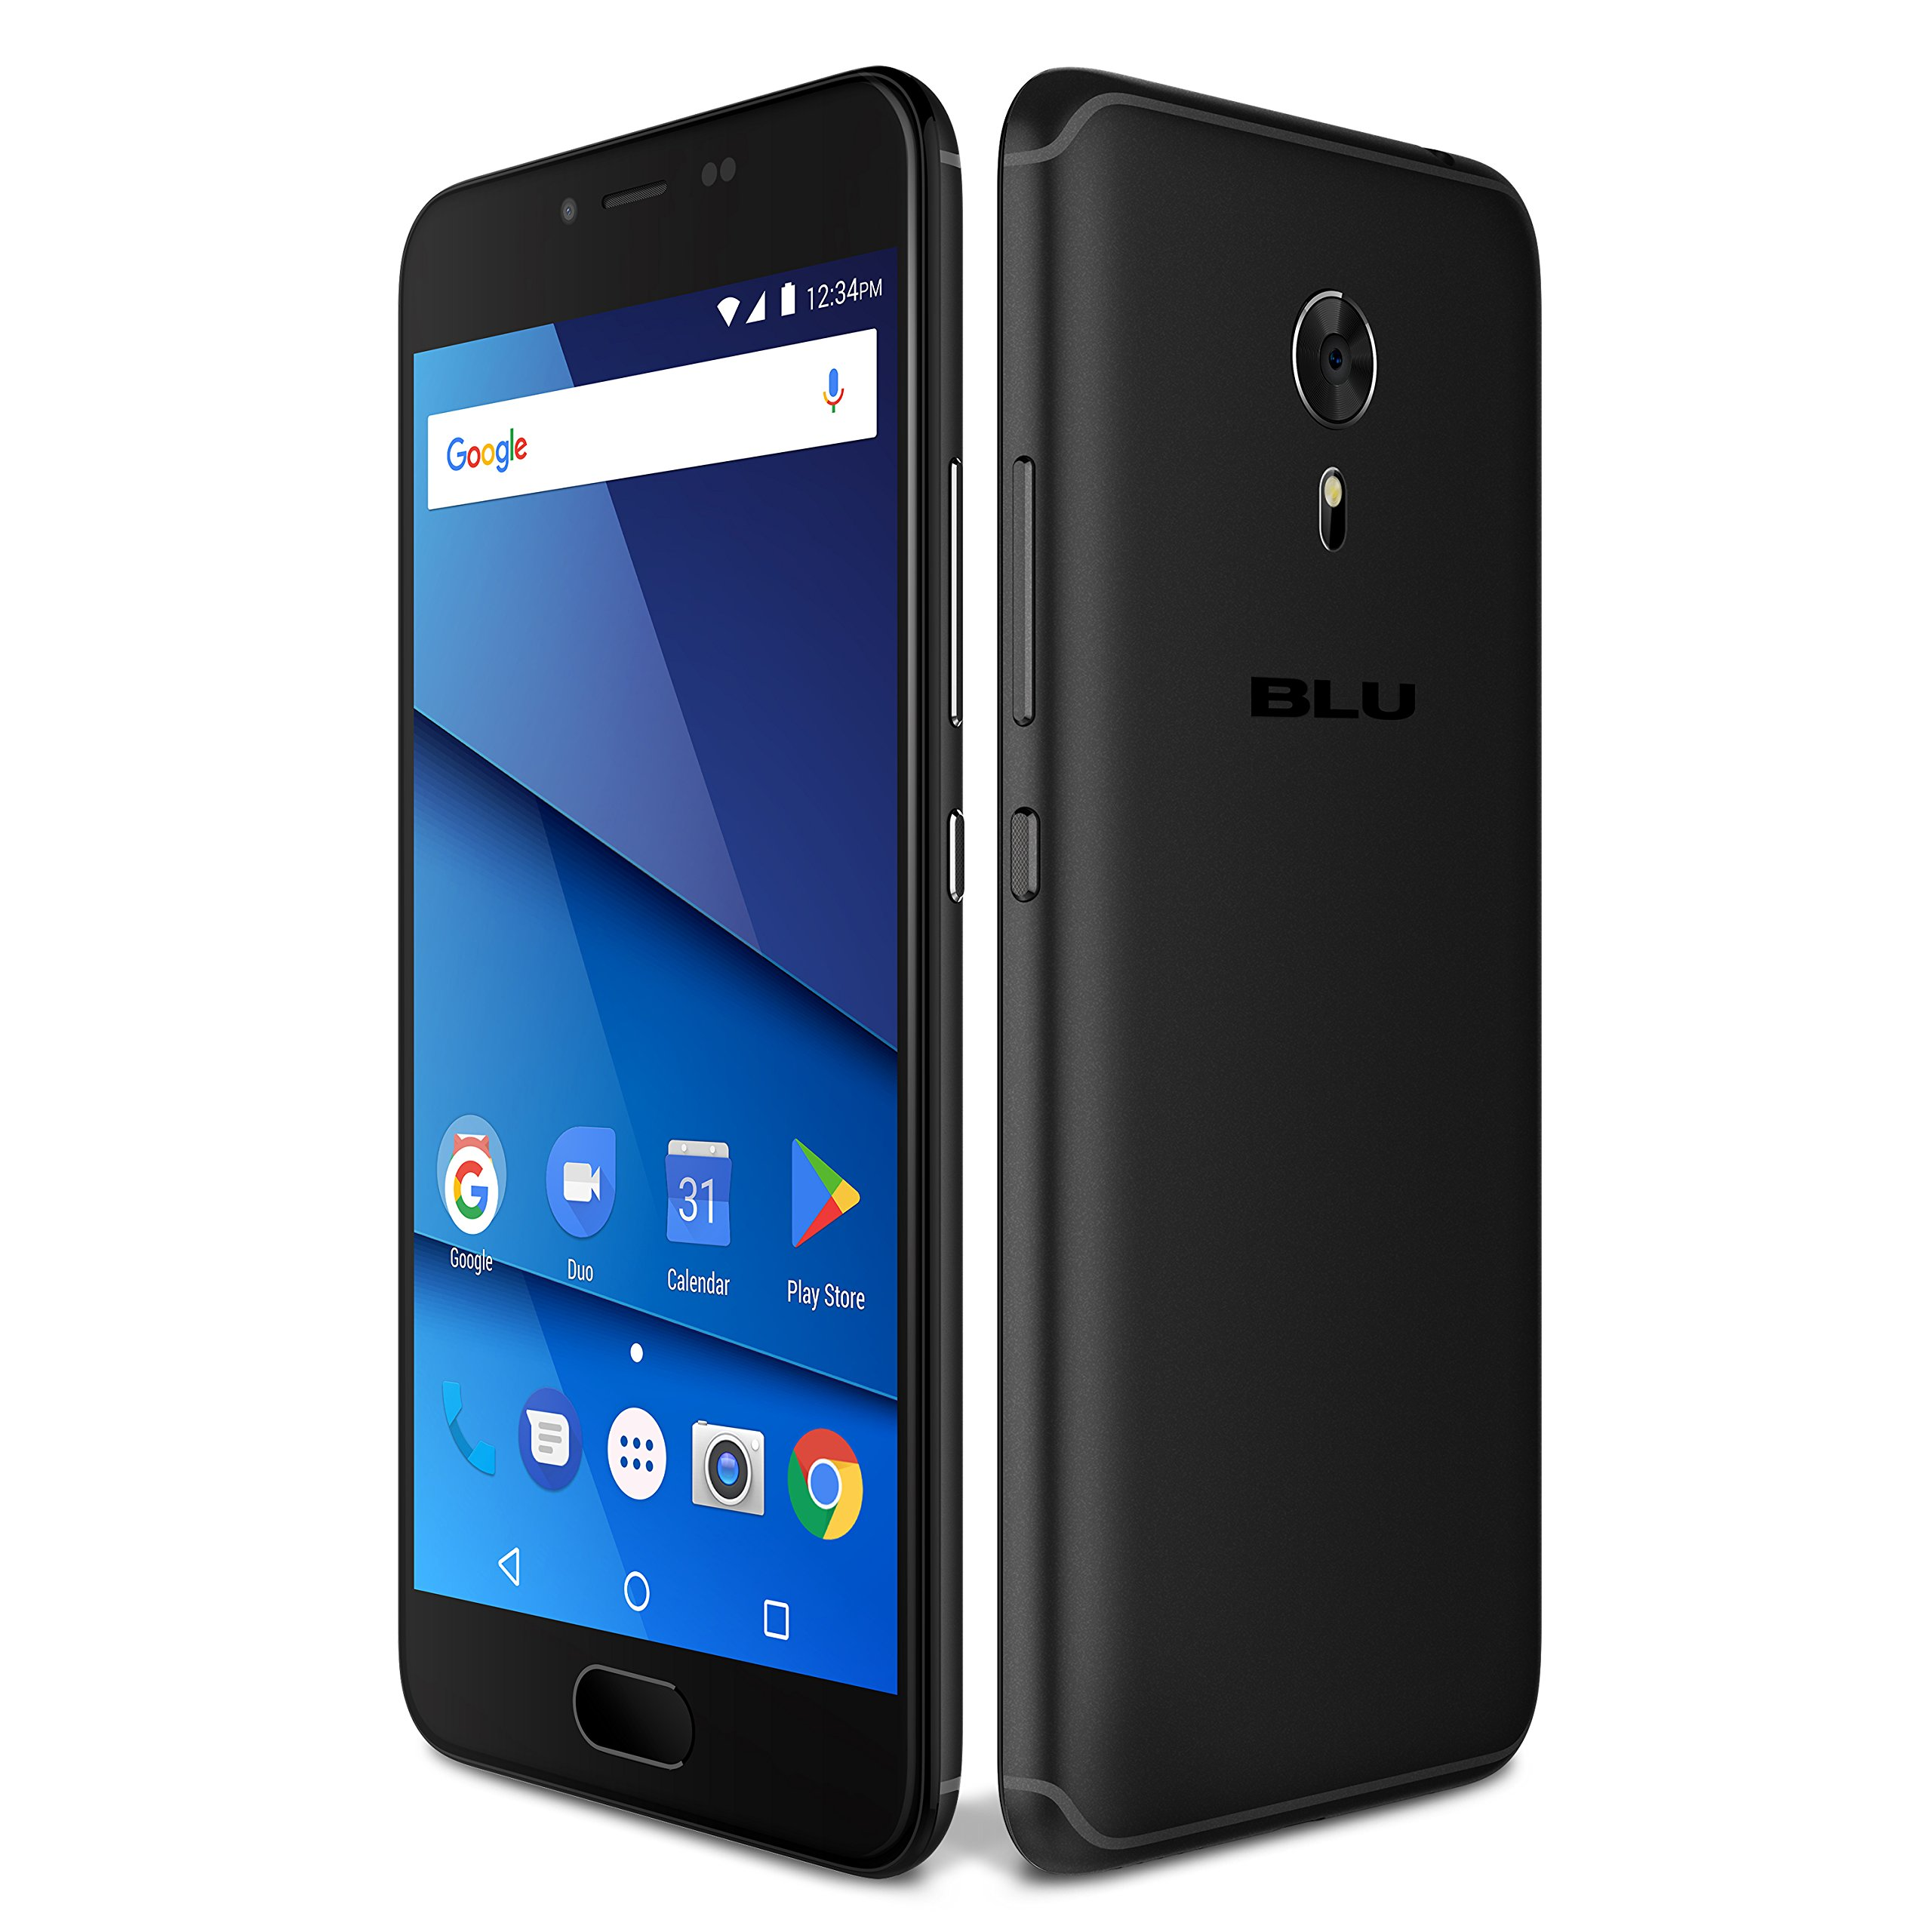 BLU R1 HD 2018 Factory Unlocked Phone - 5.2'' - 16GB - Black (U.S. Warranty)